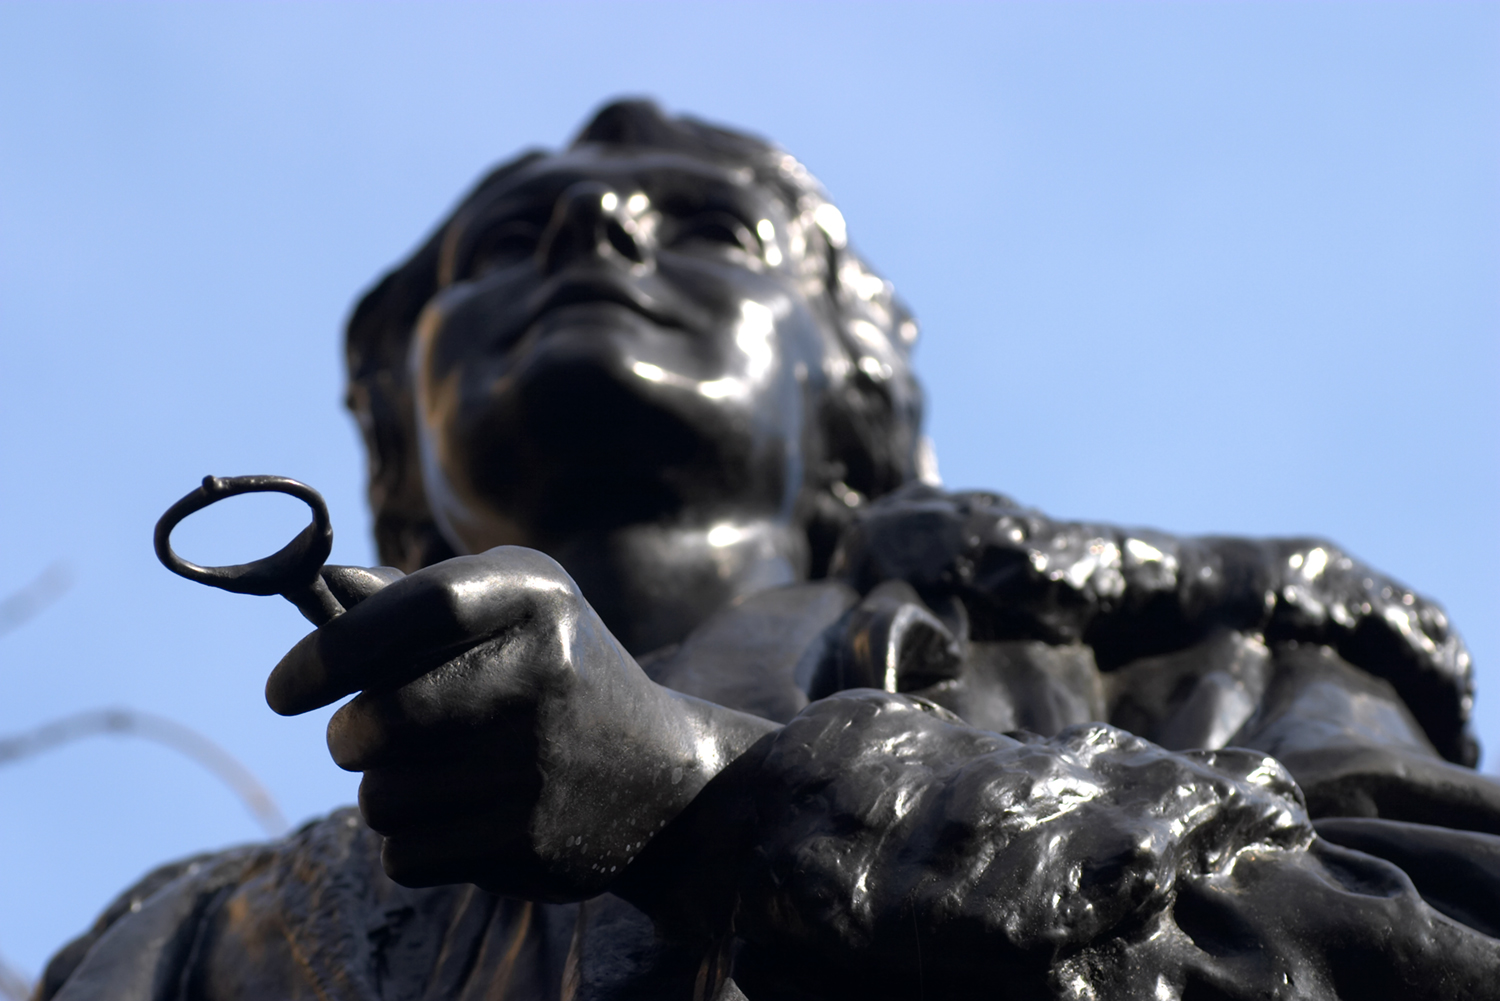 Low angle photography - statue of Emmeline Pankhurst in London